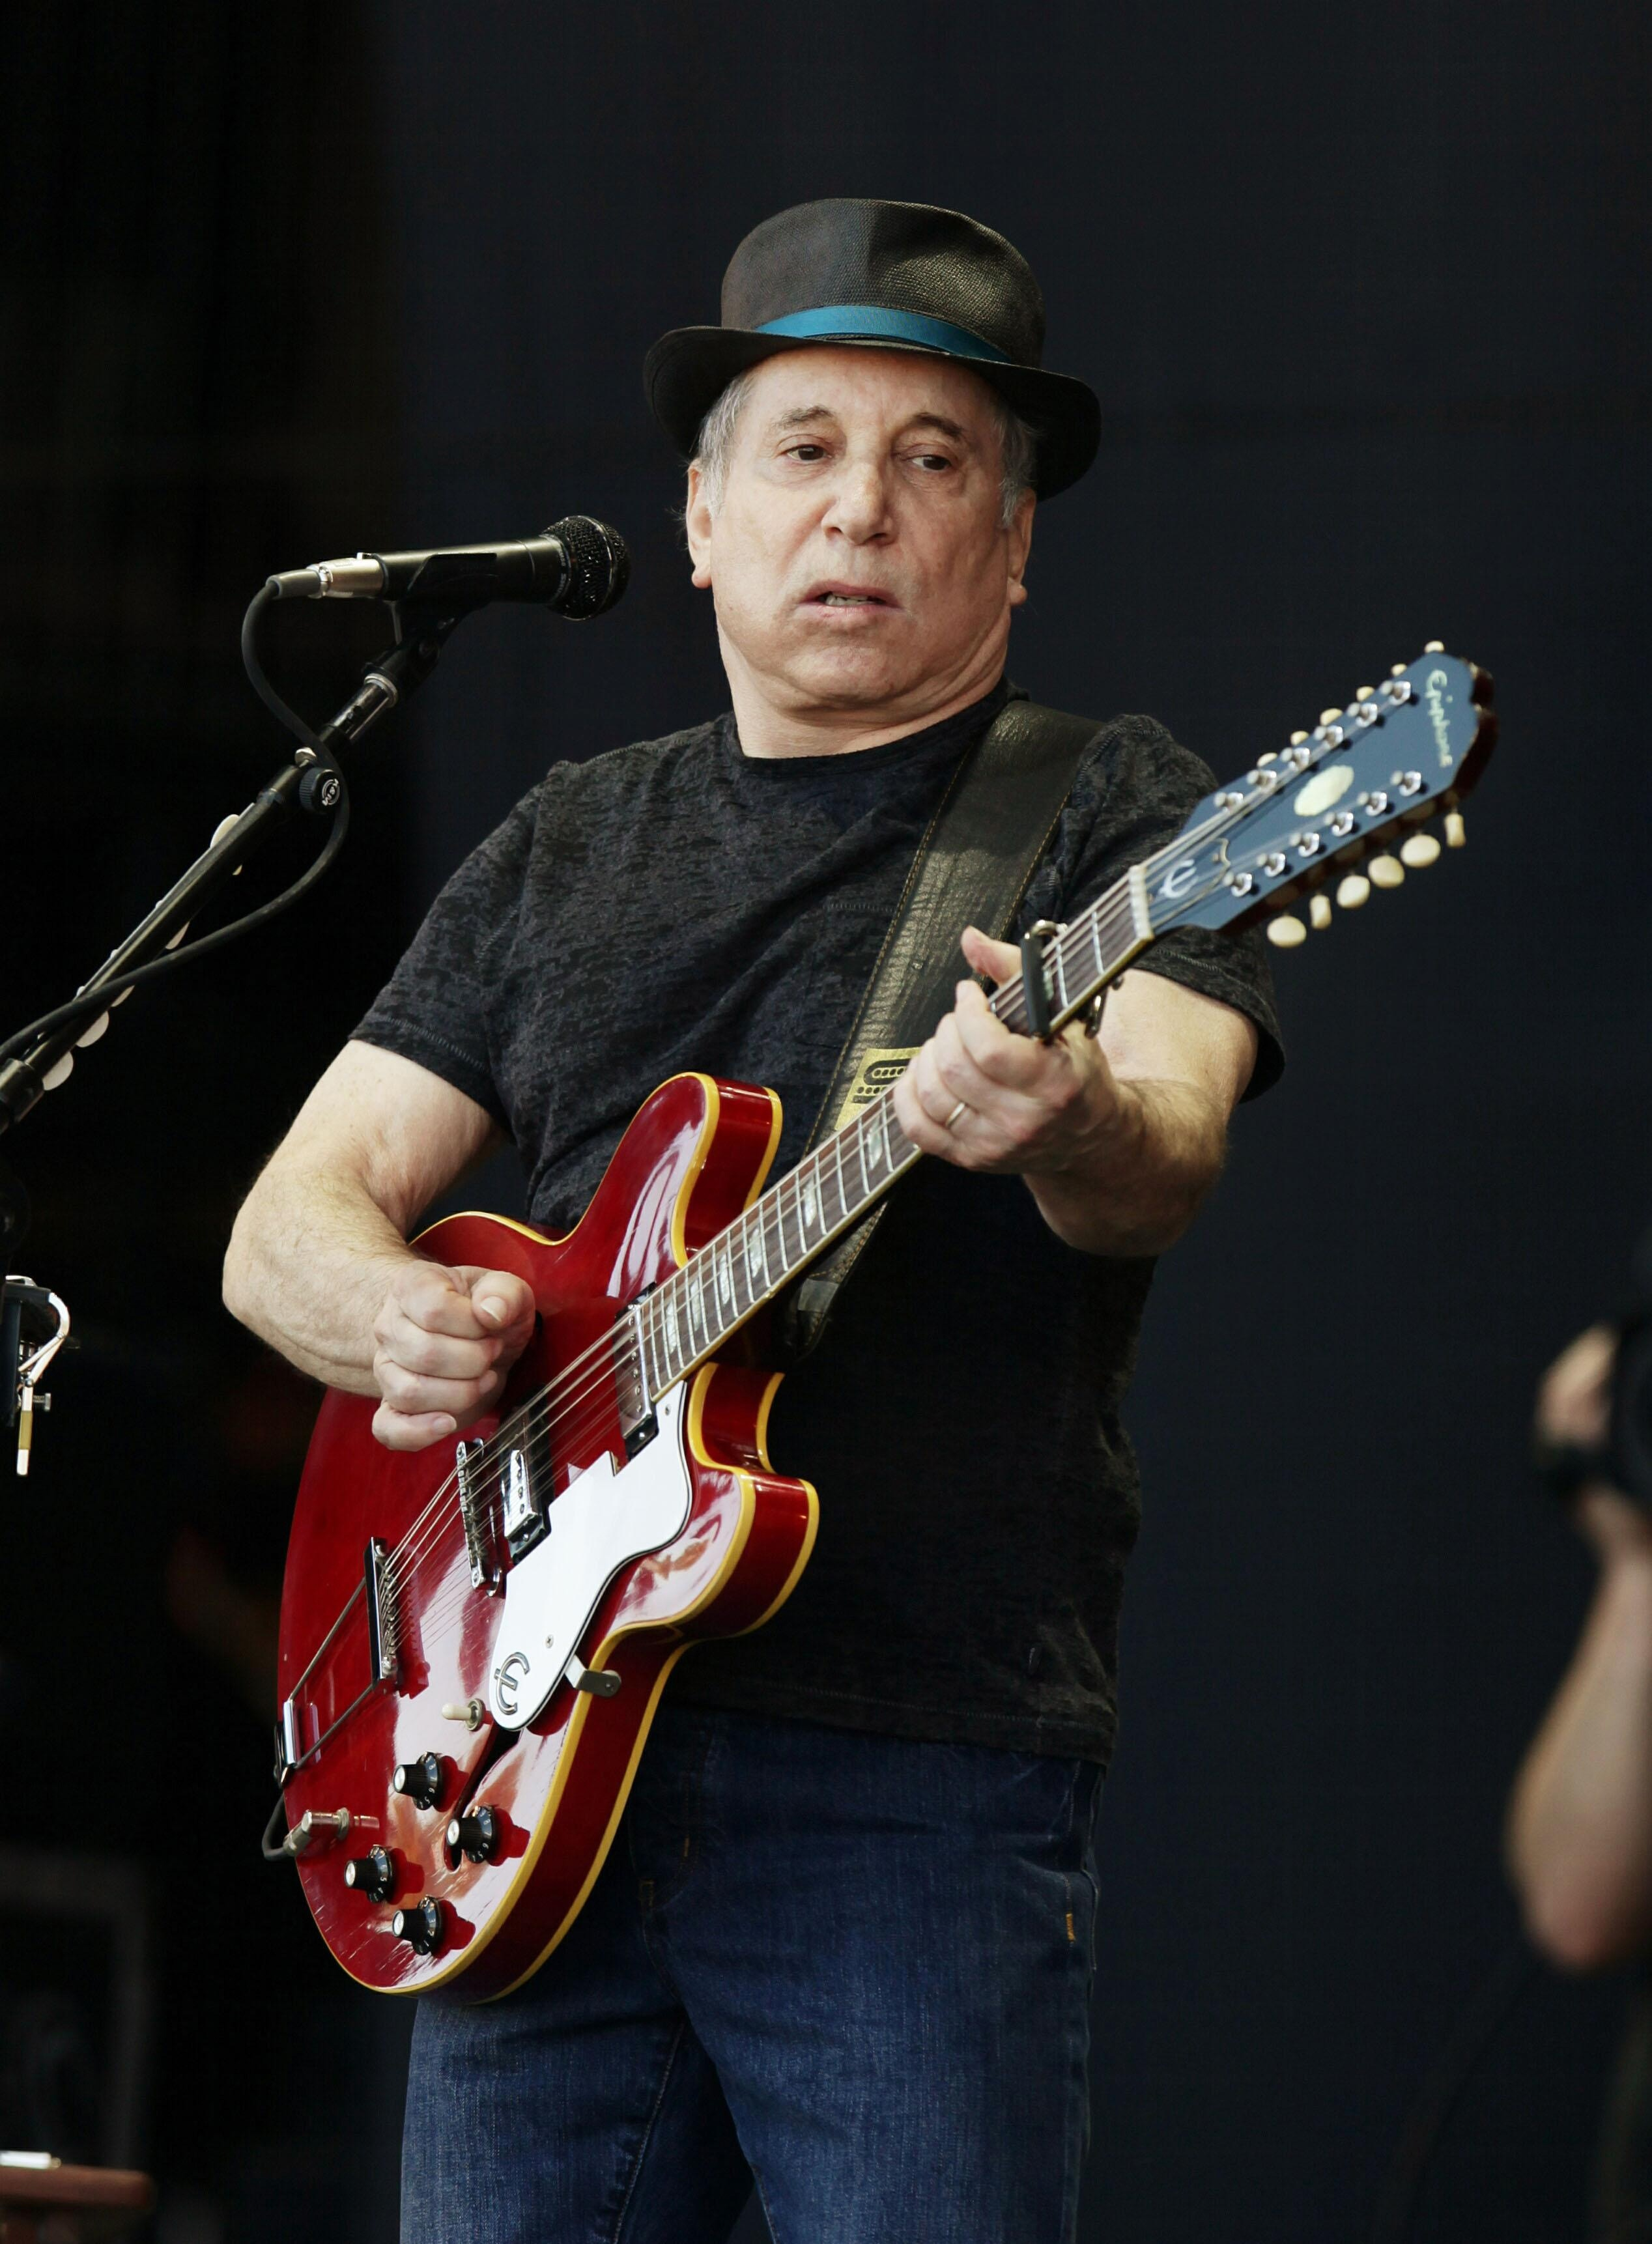 paul simon plays the 39 legends 39 slot at glastonbury nme. Black Bedroom Furniture Sets. Home Design Ideas